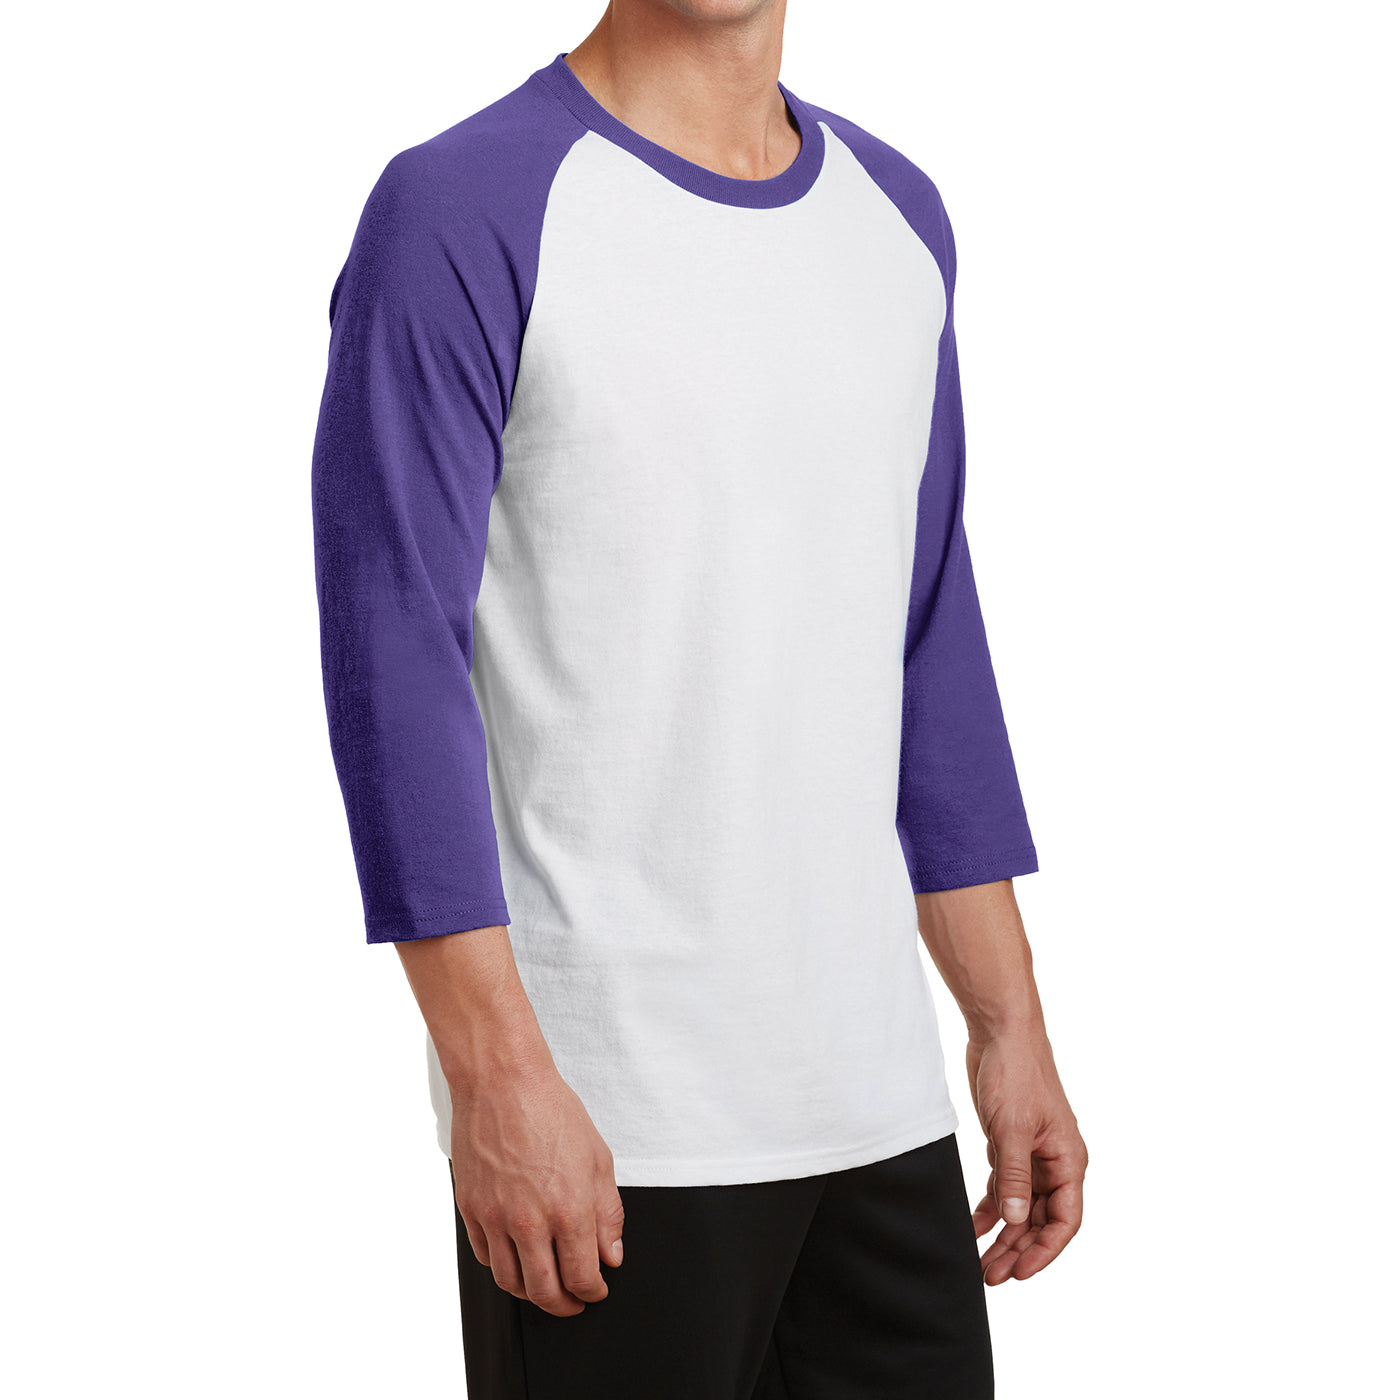 Men's Core Blend 3/4-Sleeve Raglan Tee - White/ Purple - Side